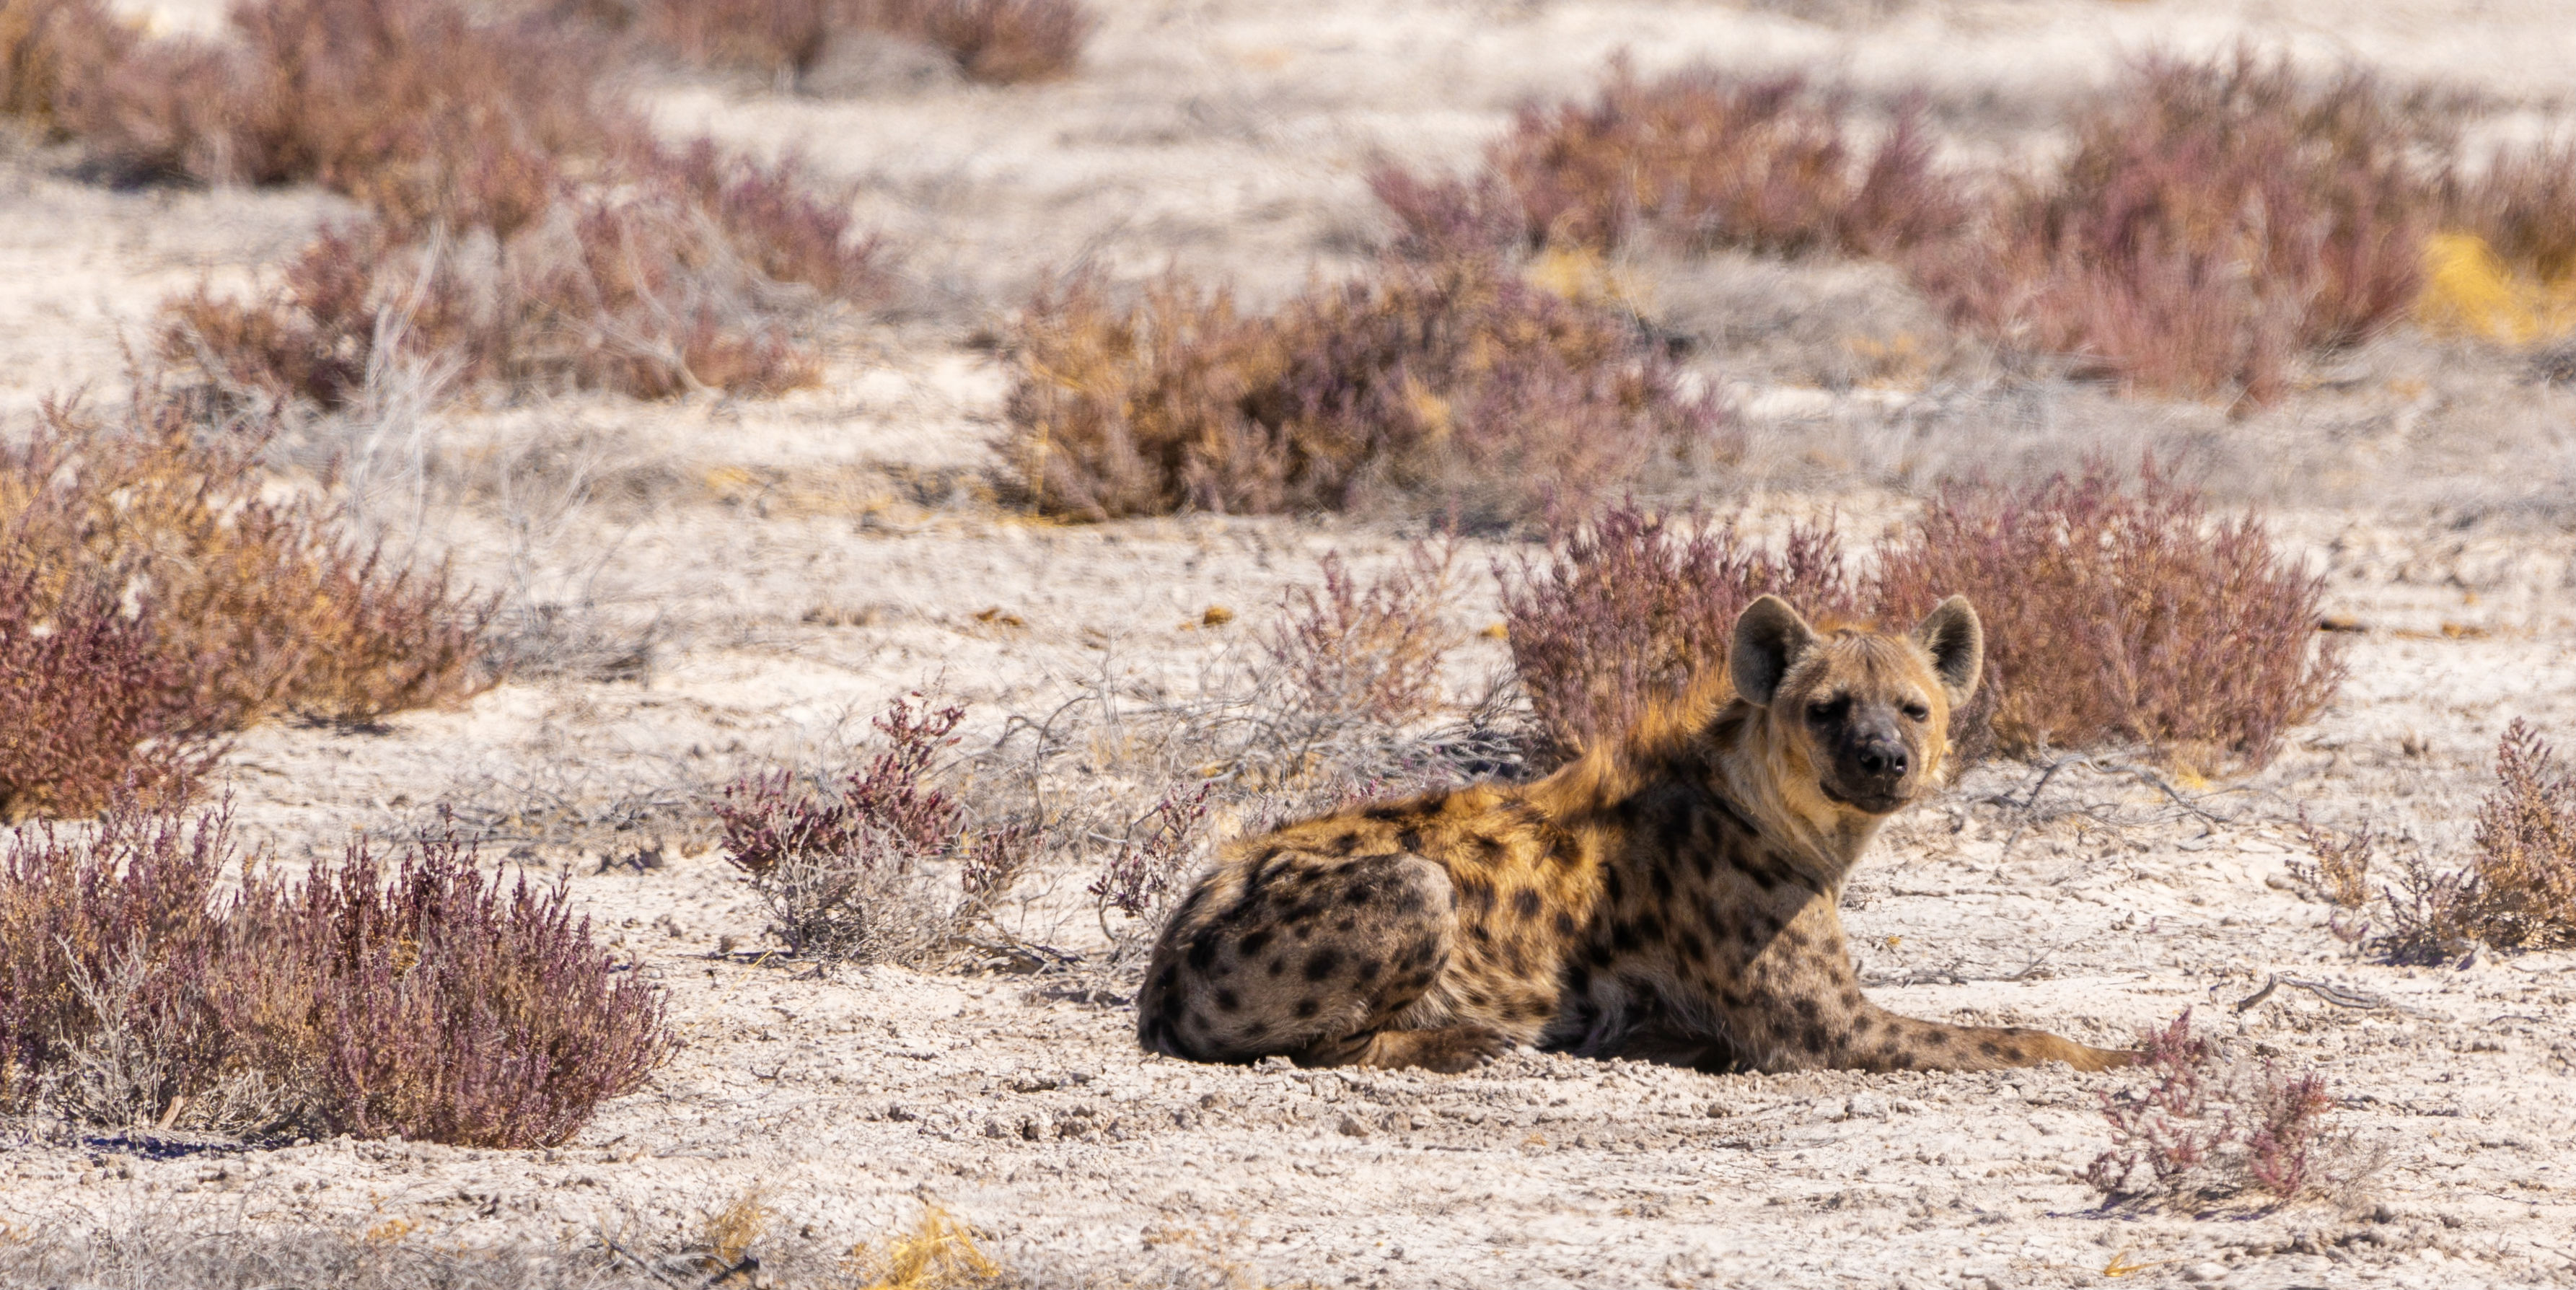 Africa animal volunteers might get a glimpse of spotted hyenas like this one, while on a GVI program.